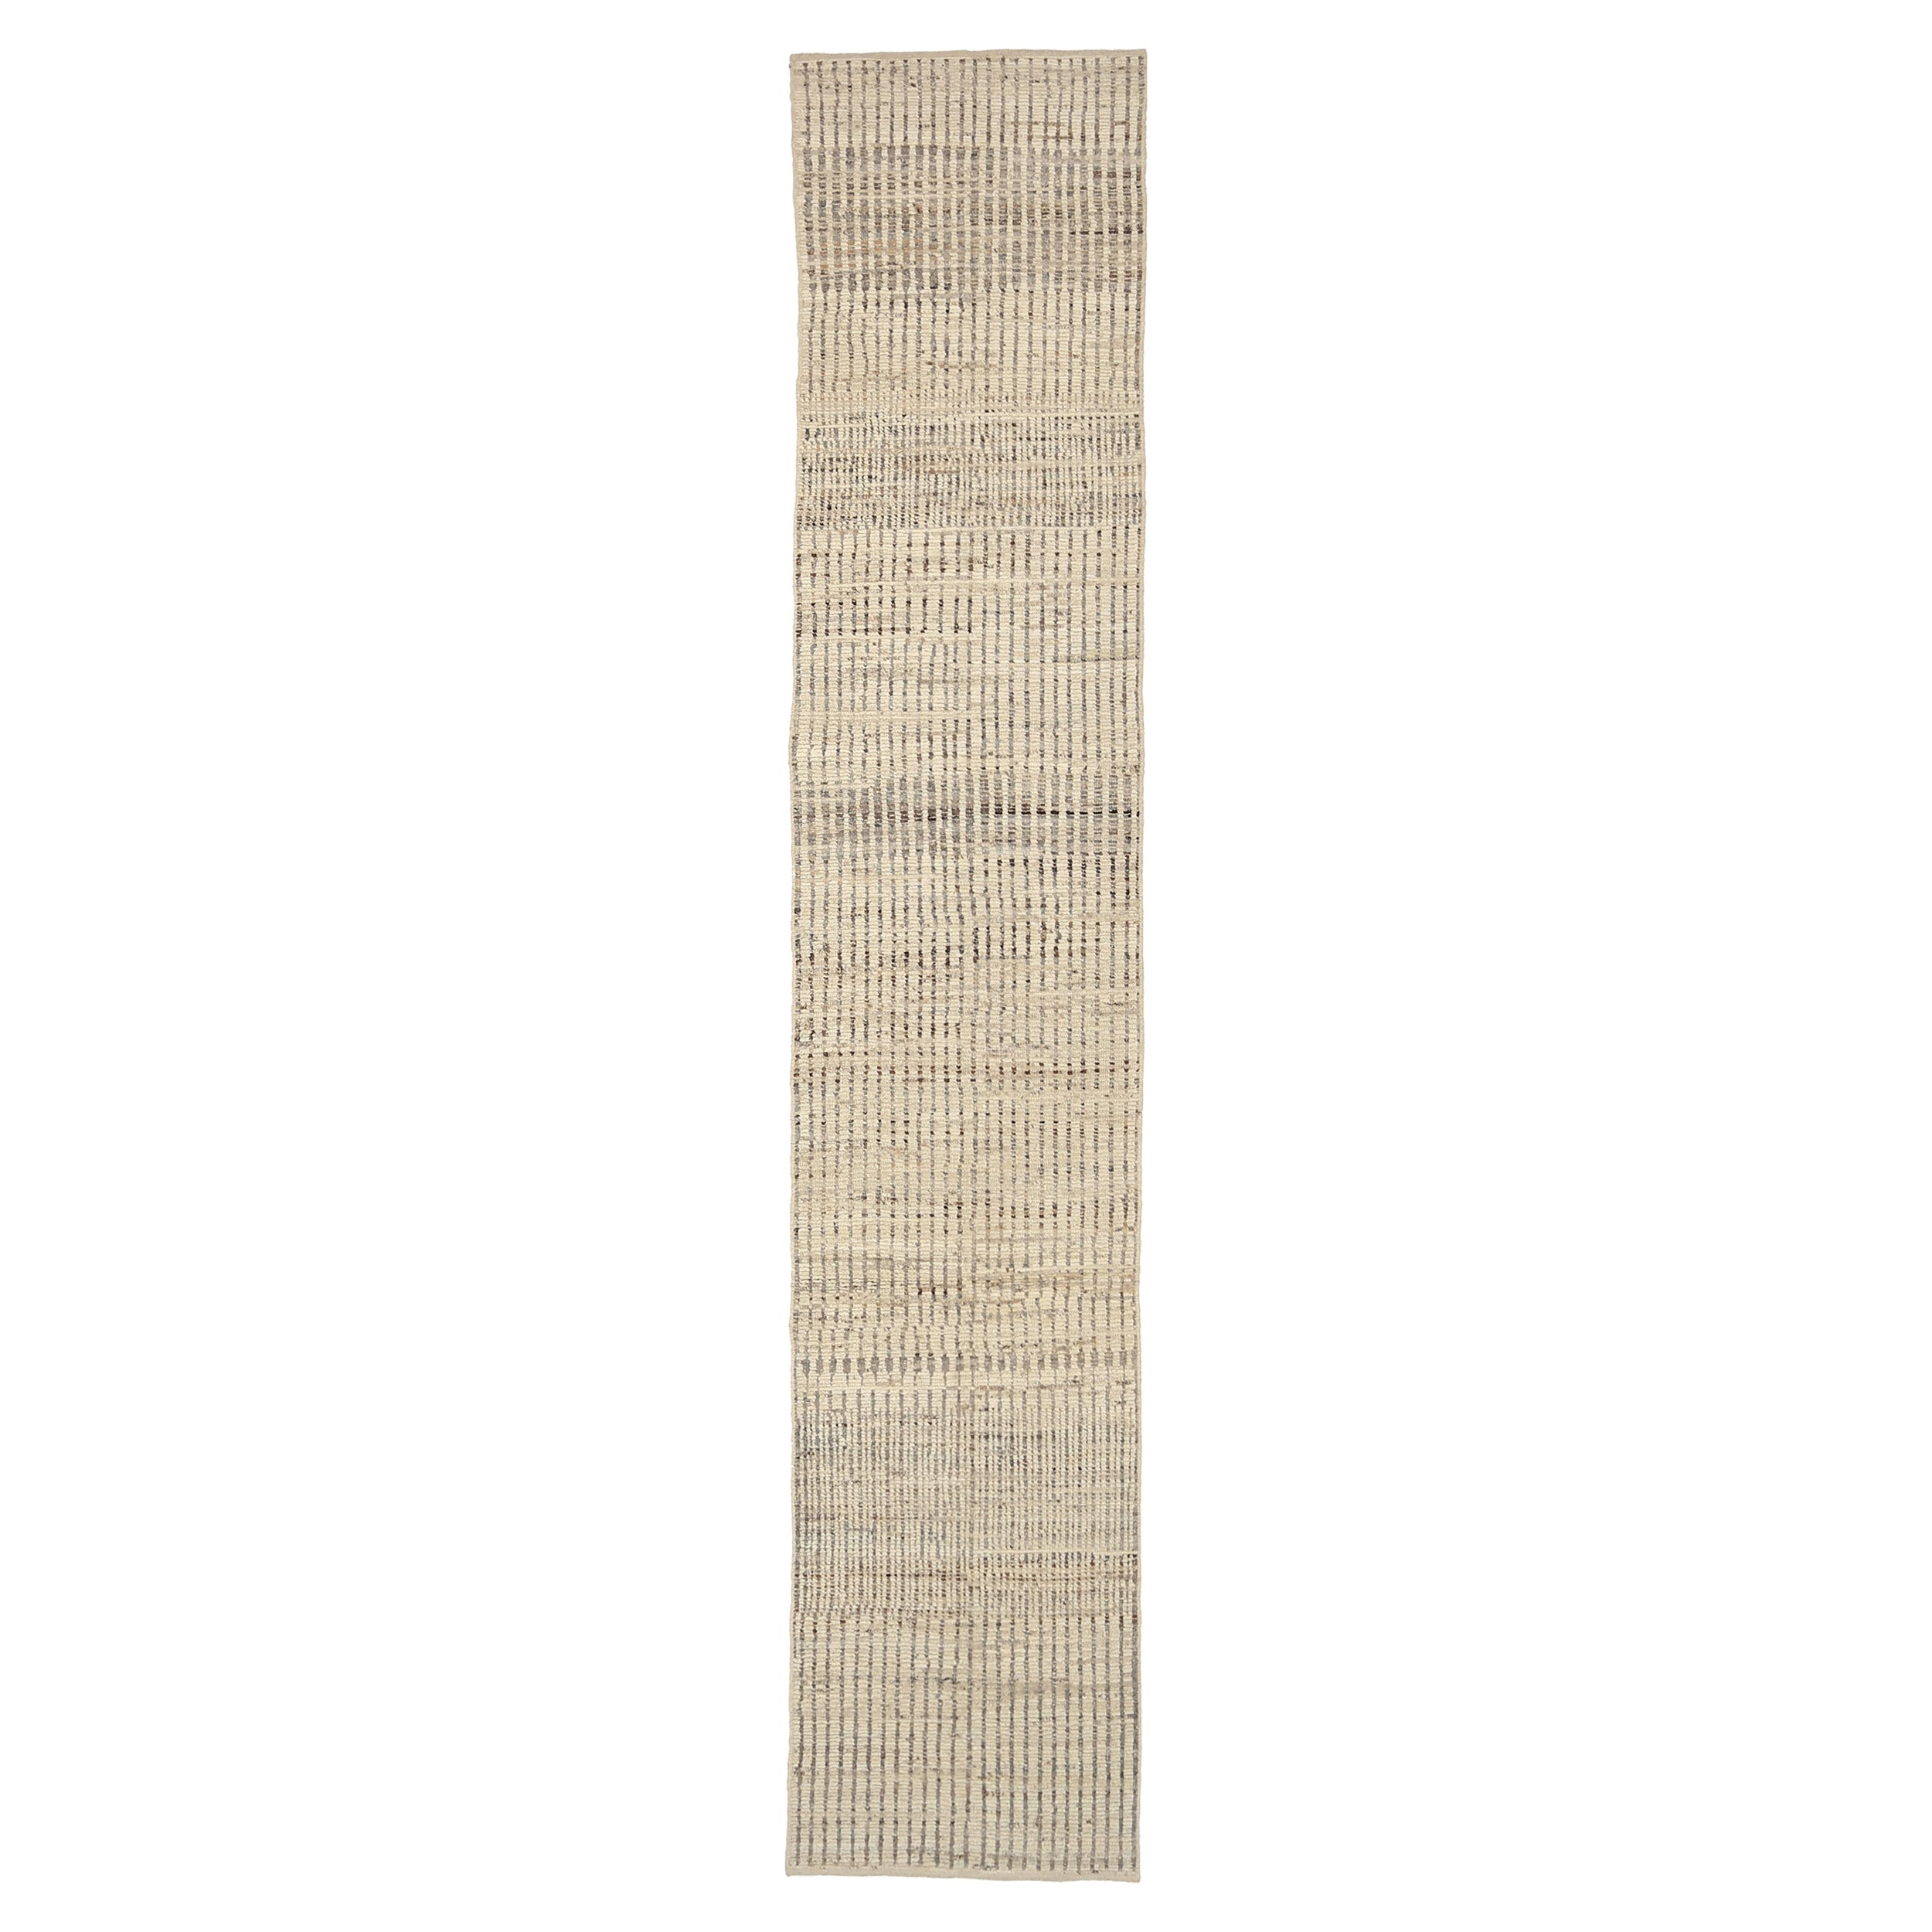 Nazmiyal Collection Beige Modern Distressed Runner. Size 2 ft 11 in x 15 ft 9 in